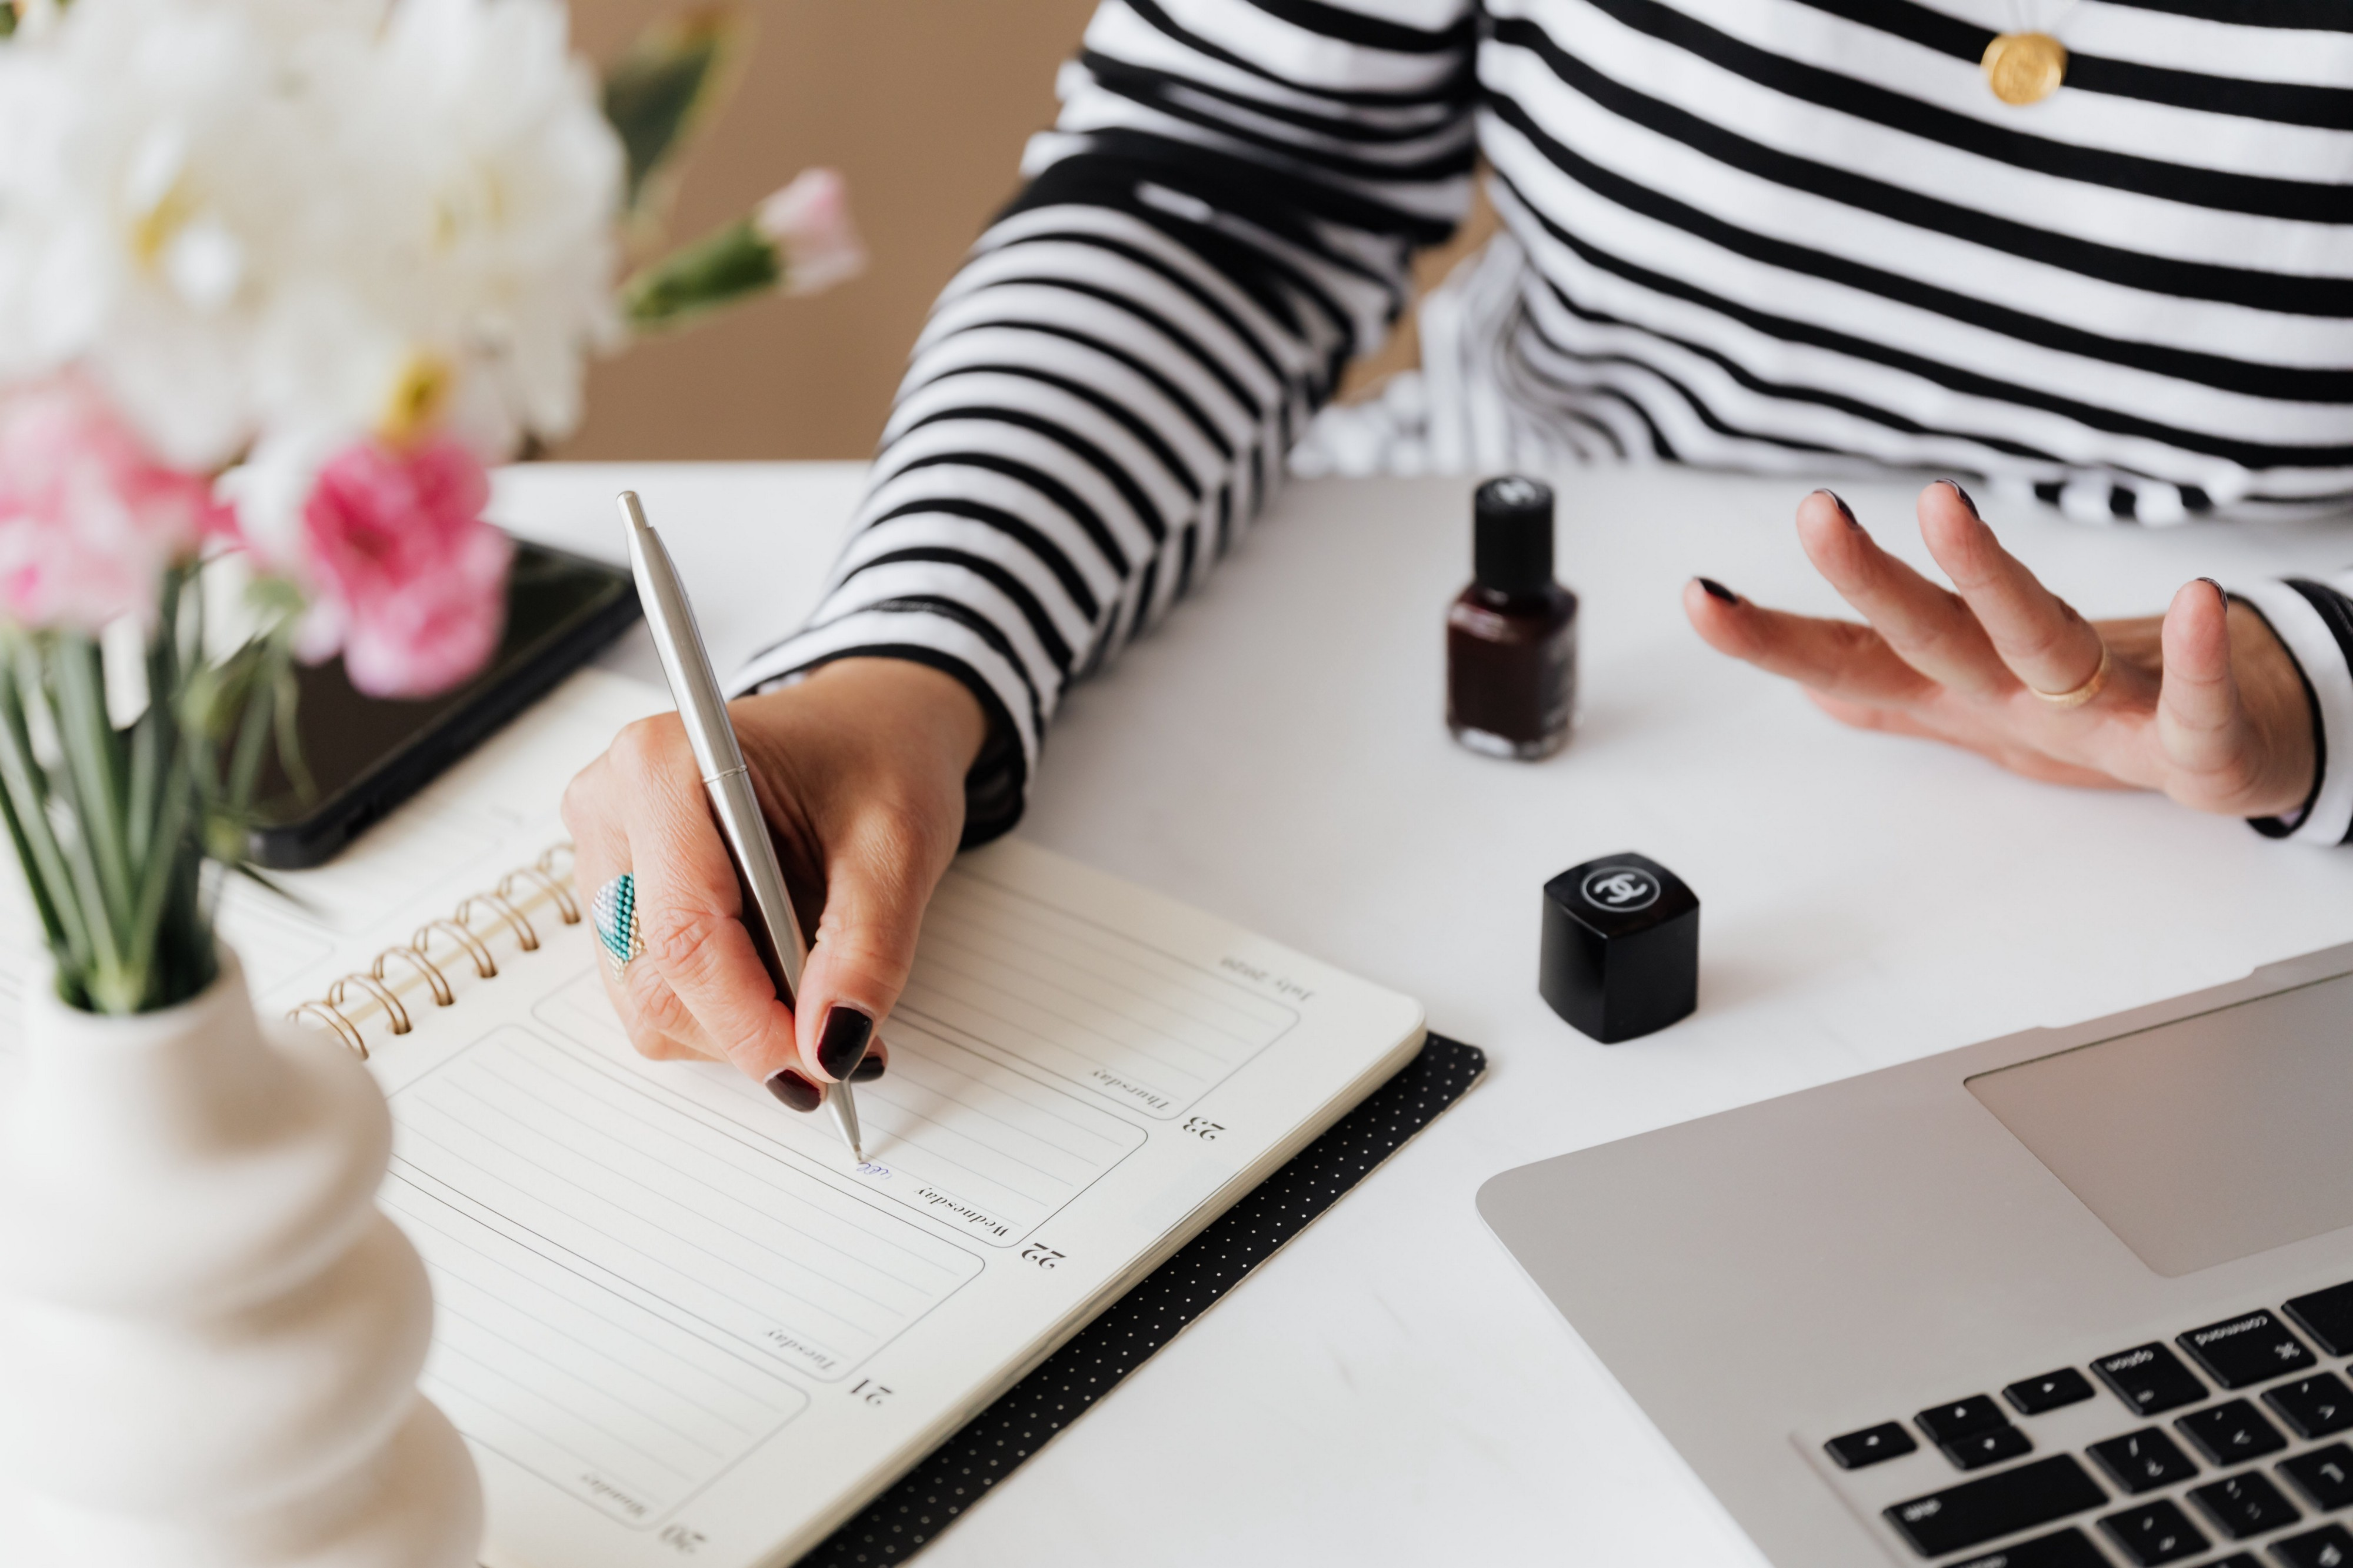 An individual writing in a planner on a neat white desk, with flowers, nail polish, and a laptop. Individual is wearing a white and black striped shirt.